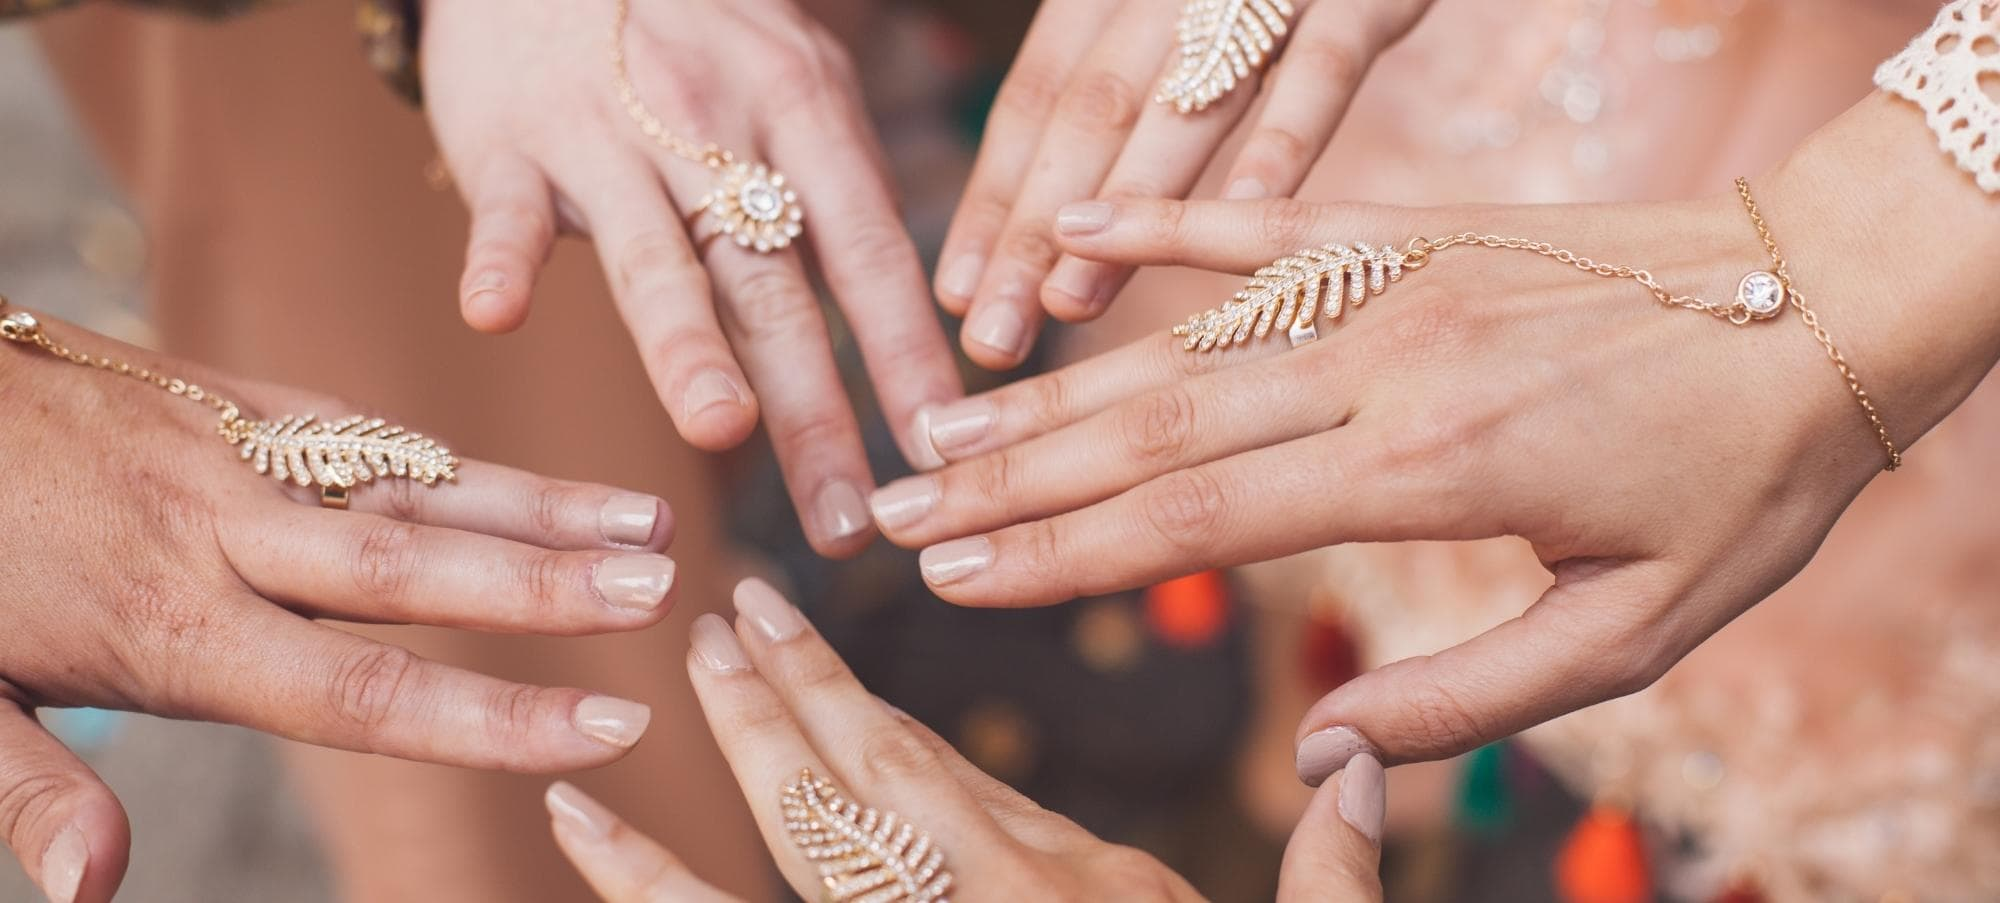 Hands from our diversity team at Maison M'Elise